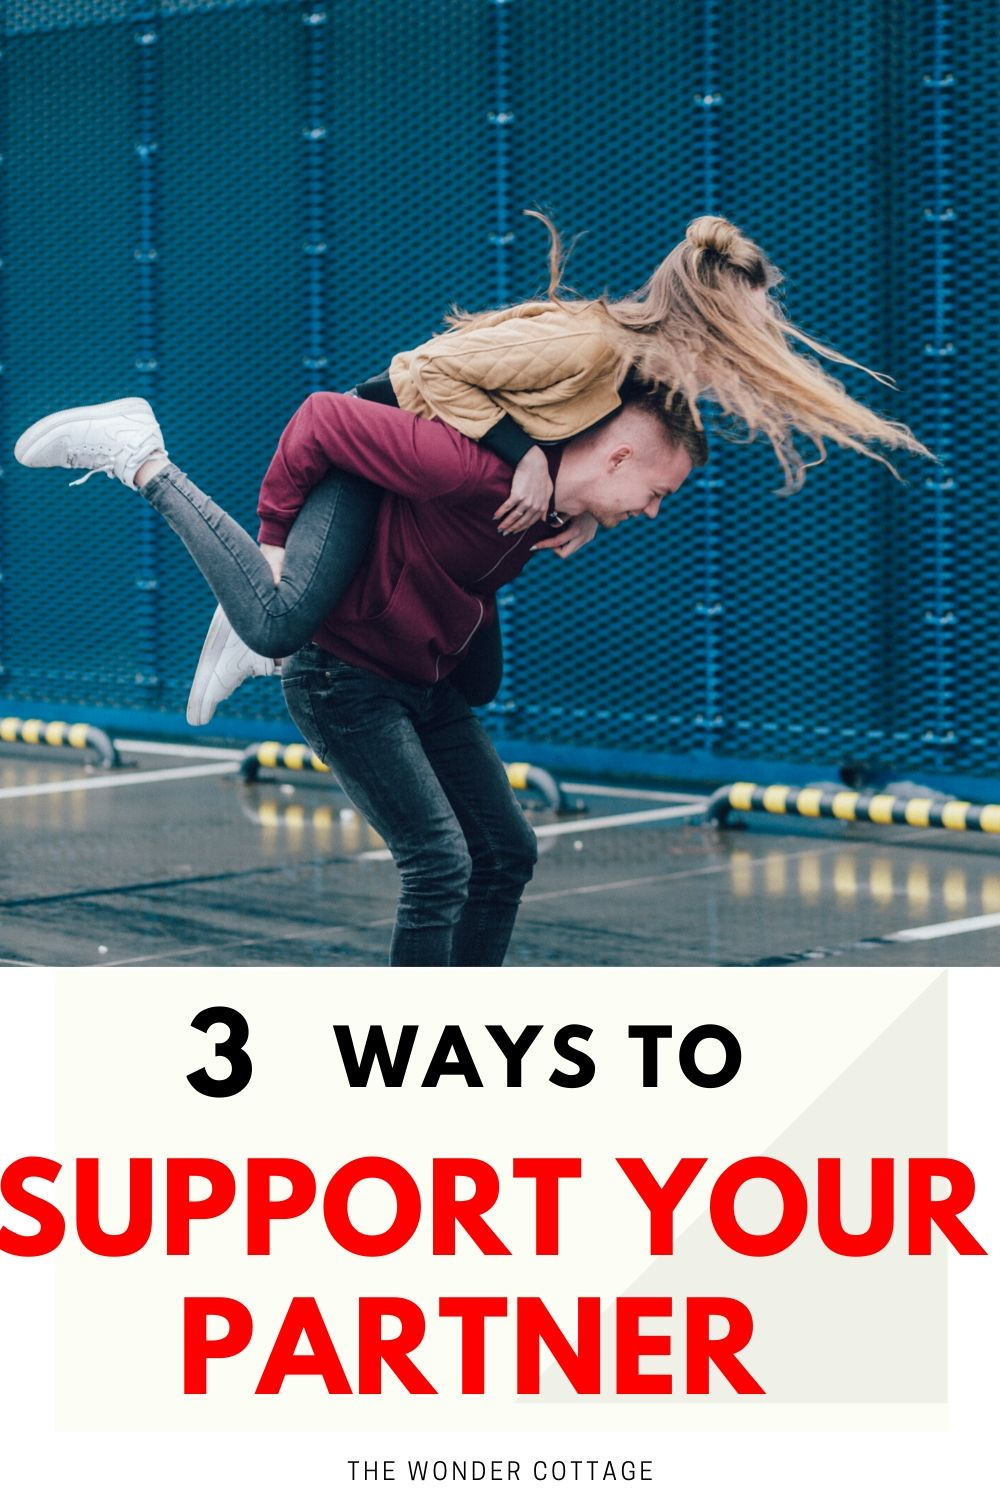 3 ways to support your partner